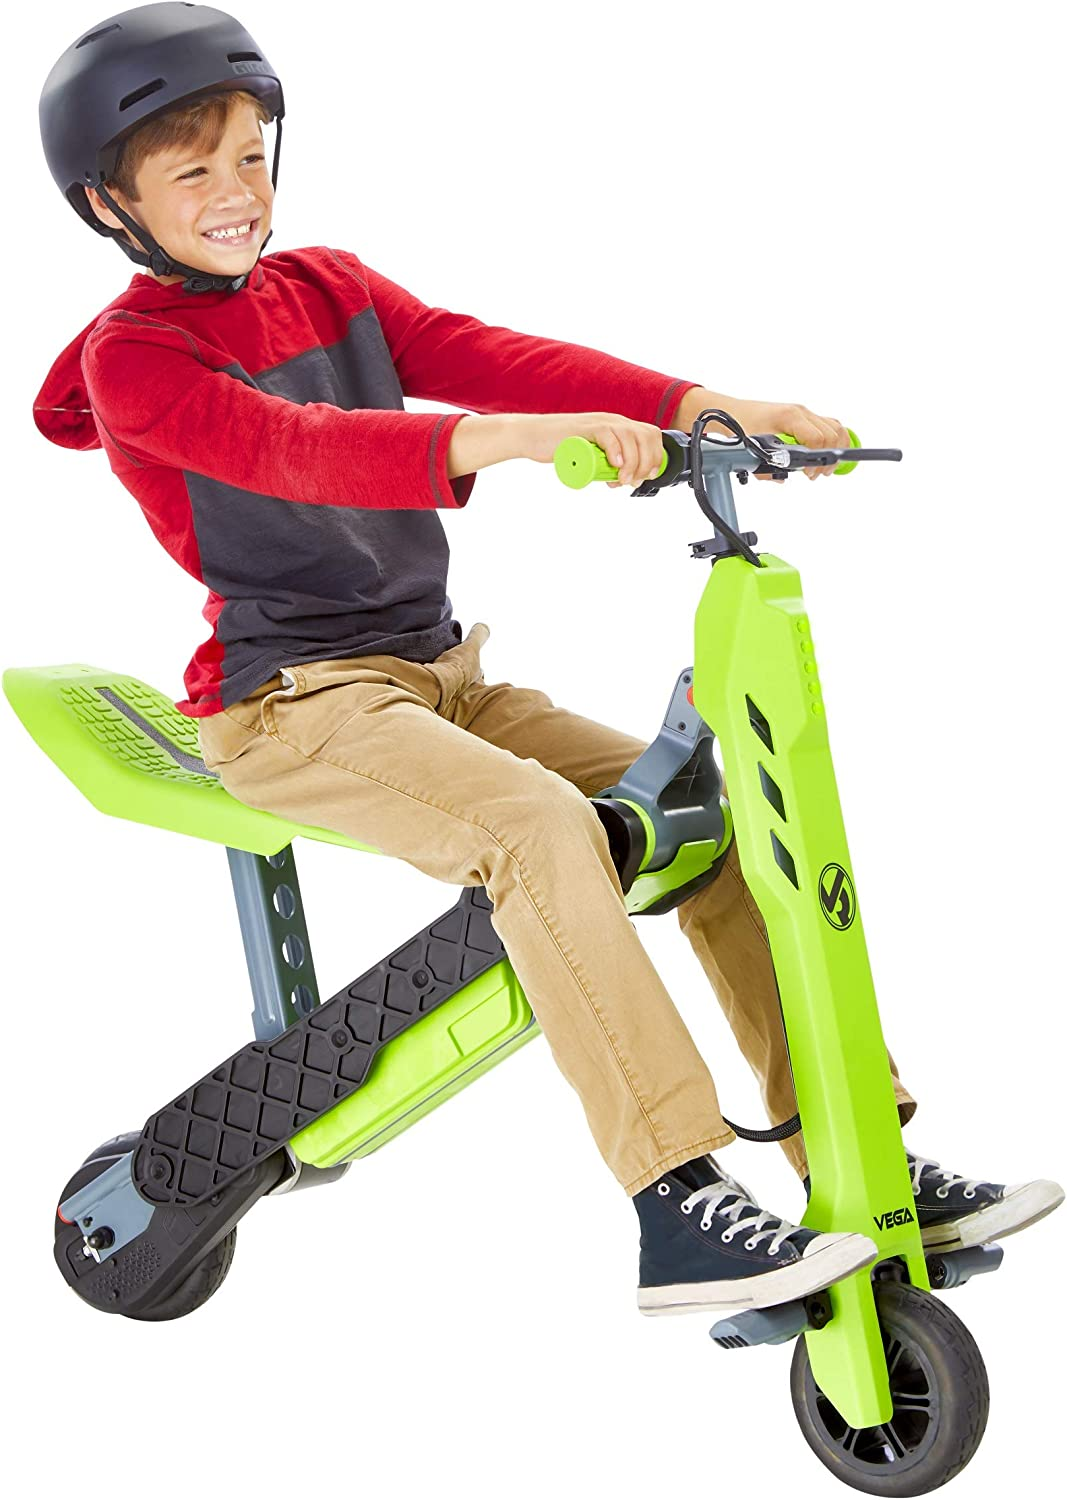 VIRO Rides Vega -Best 2-in-1 Kids Electric Scooter 2021